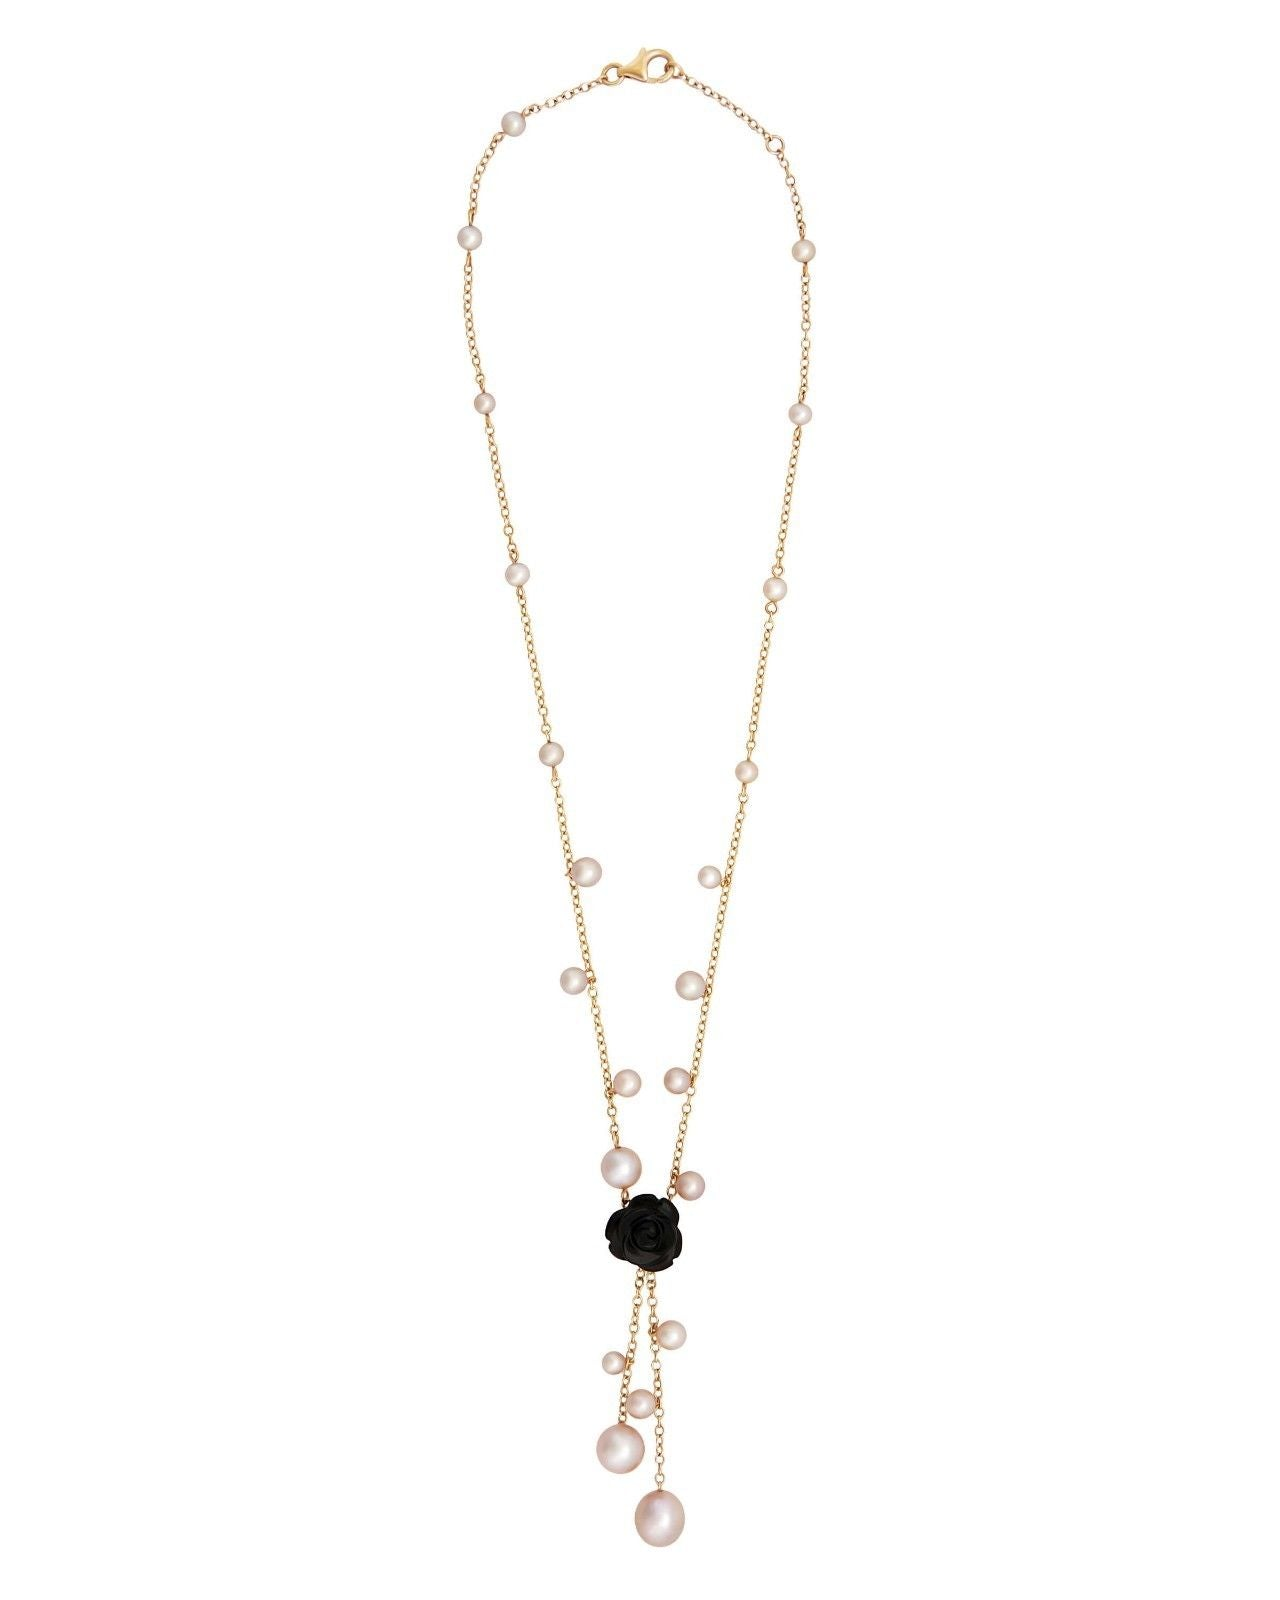 Mimi Milano Necklace In 18K Rose Gold, Black Agate Violet Pearls C228R3O